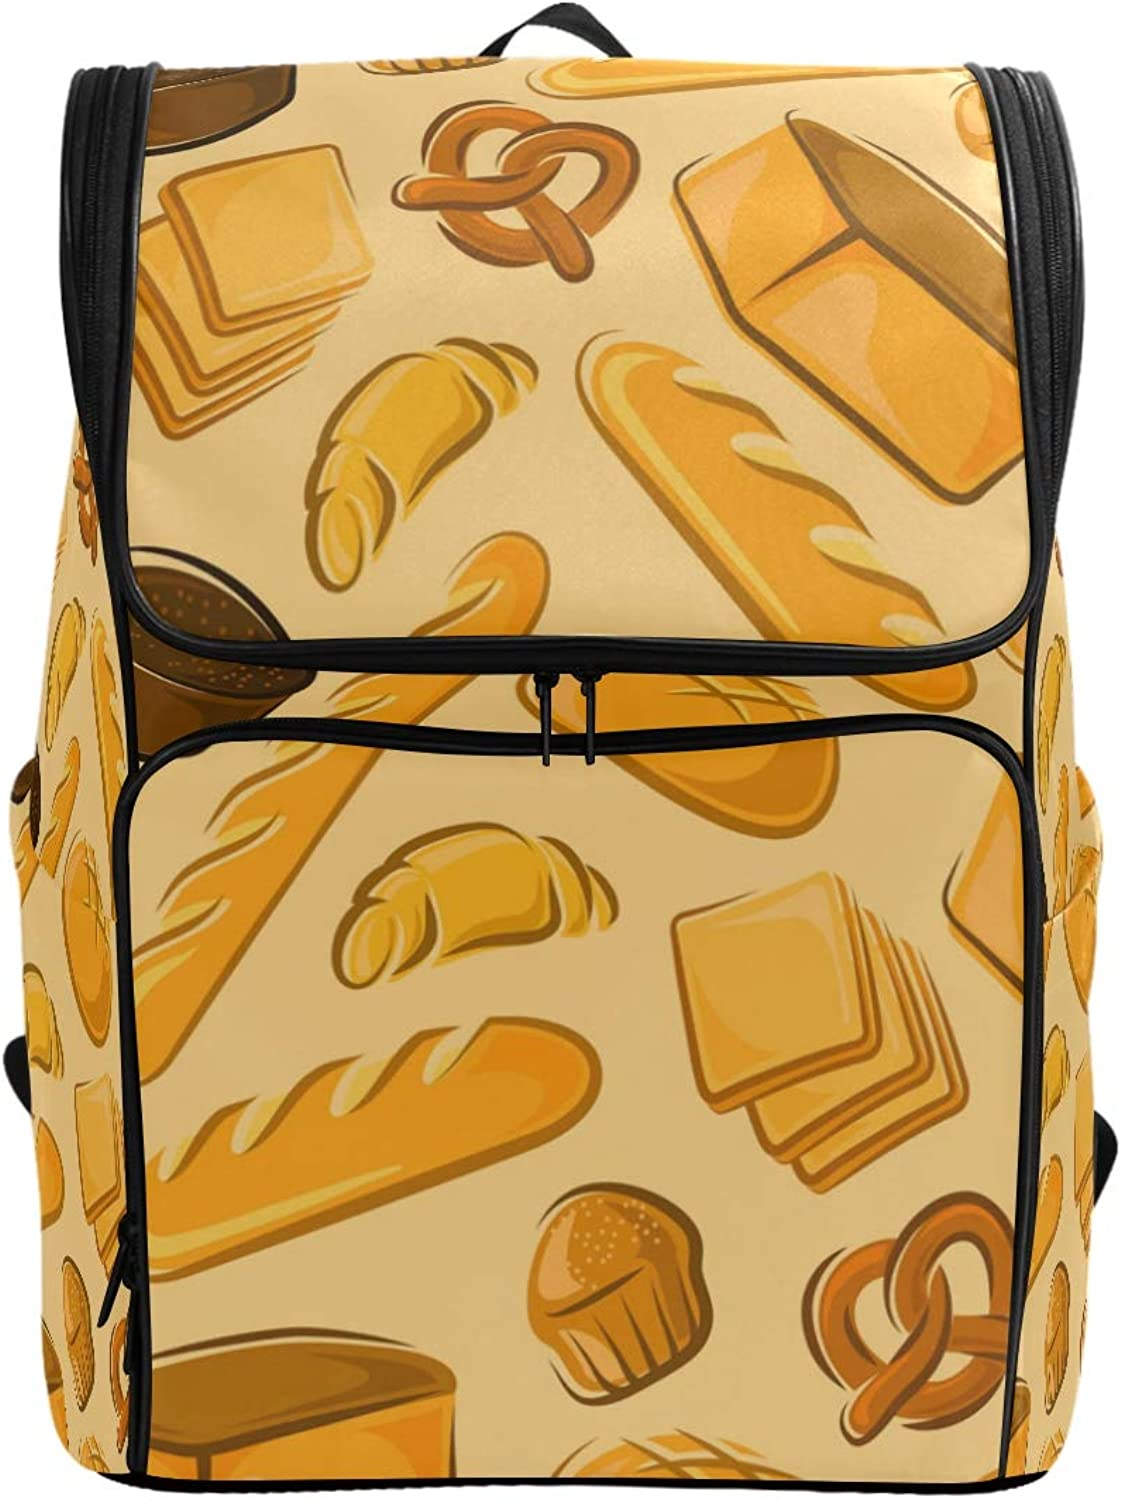 FANTAZIO Bakery Fresh Bread and Cakes Laptop Outdoor Backpack Travel Hiking Camping Rucksack Pack, Casual Large College School Daypack